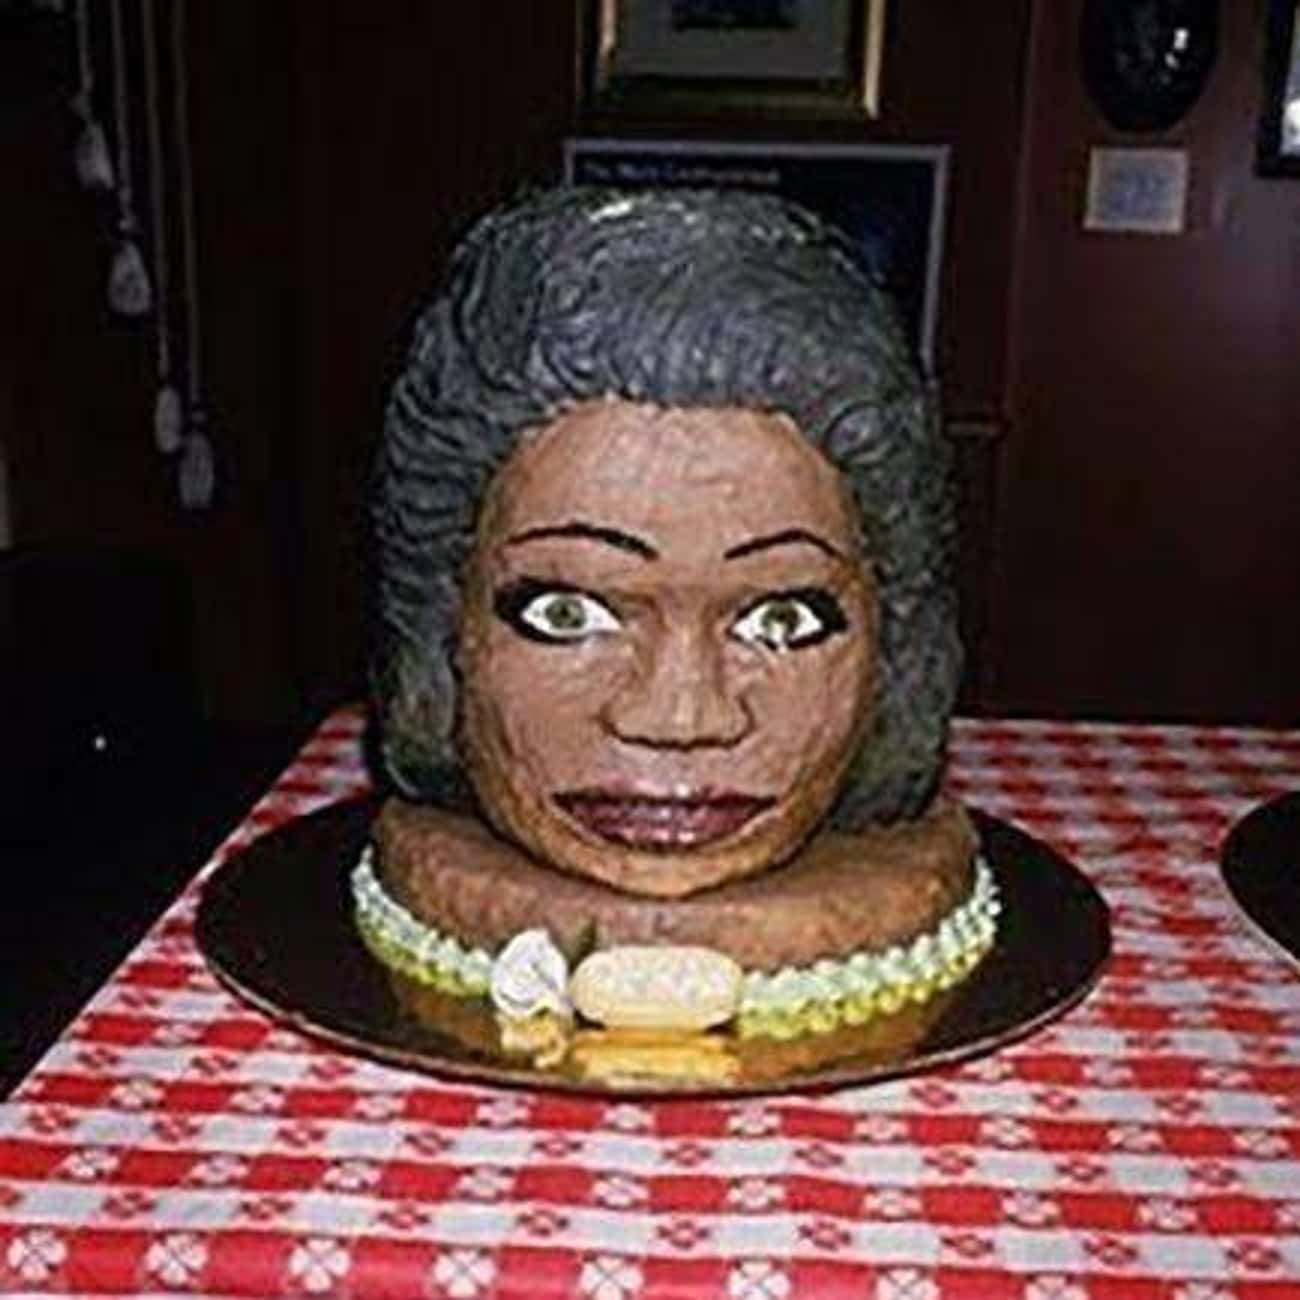 You Get an Ugly Cake! You Get  is listed (or ranked) 2 on the list 17 Celebrity Face Cakes That Don't Look Quite Right